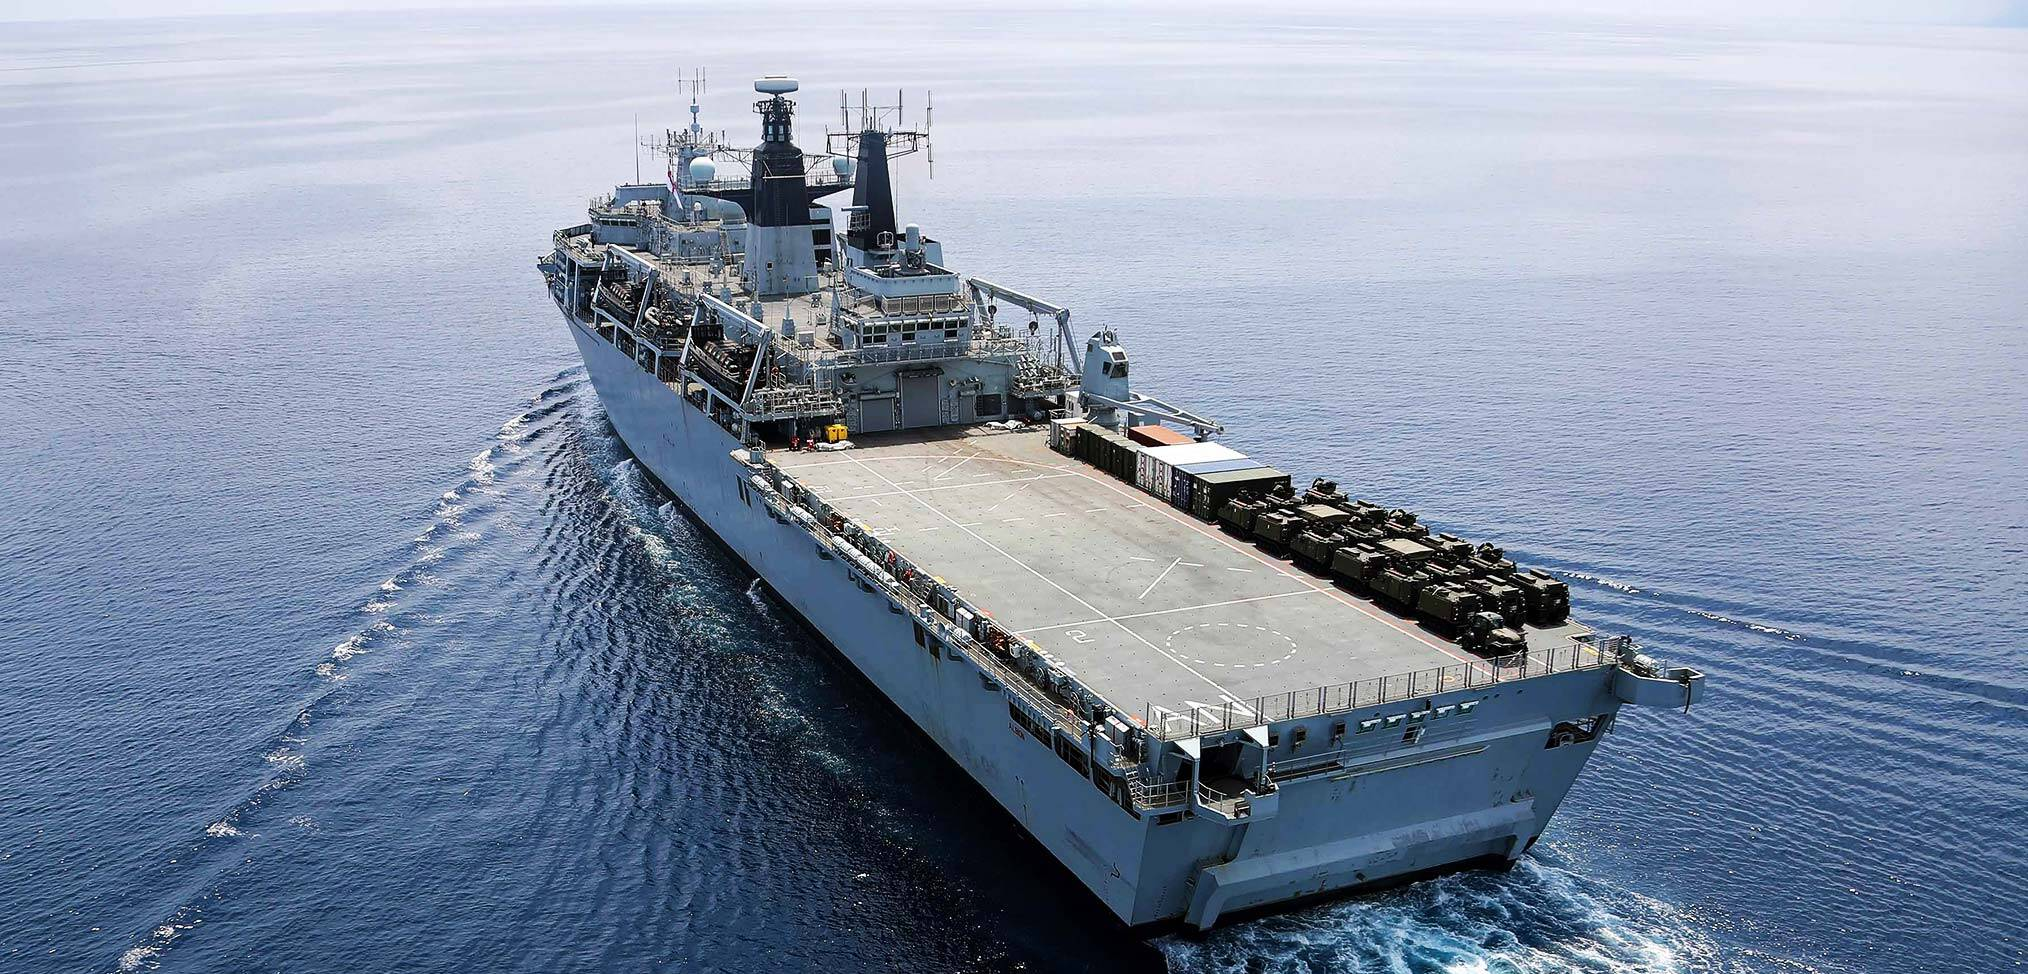 Royal Navy amphibious warfare capability in flux